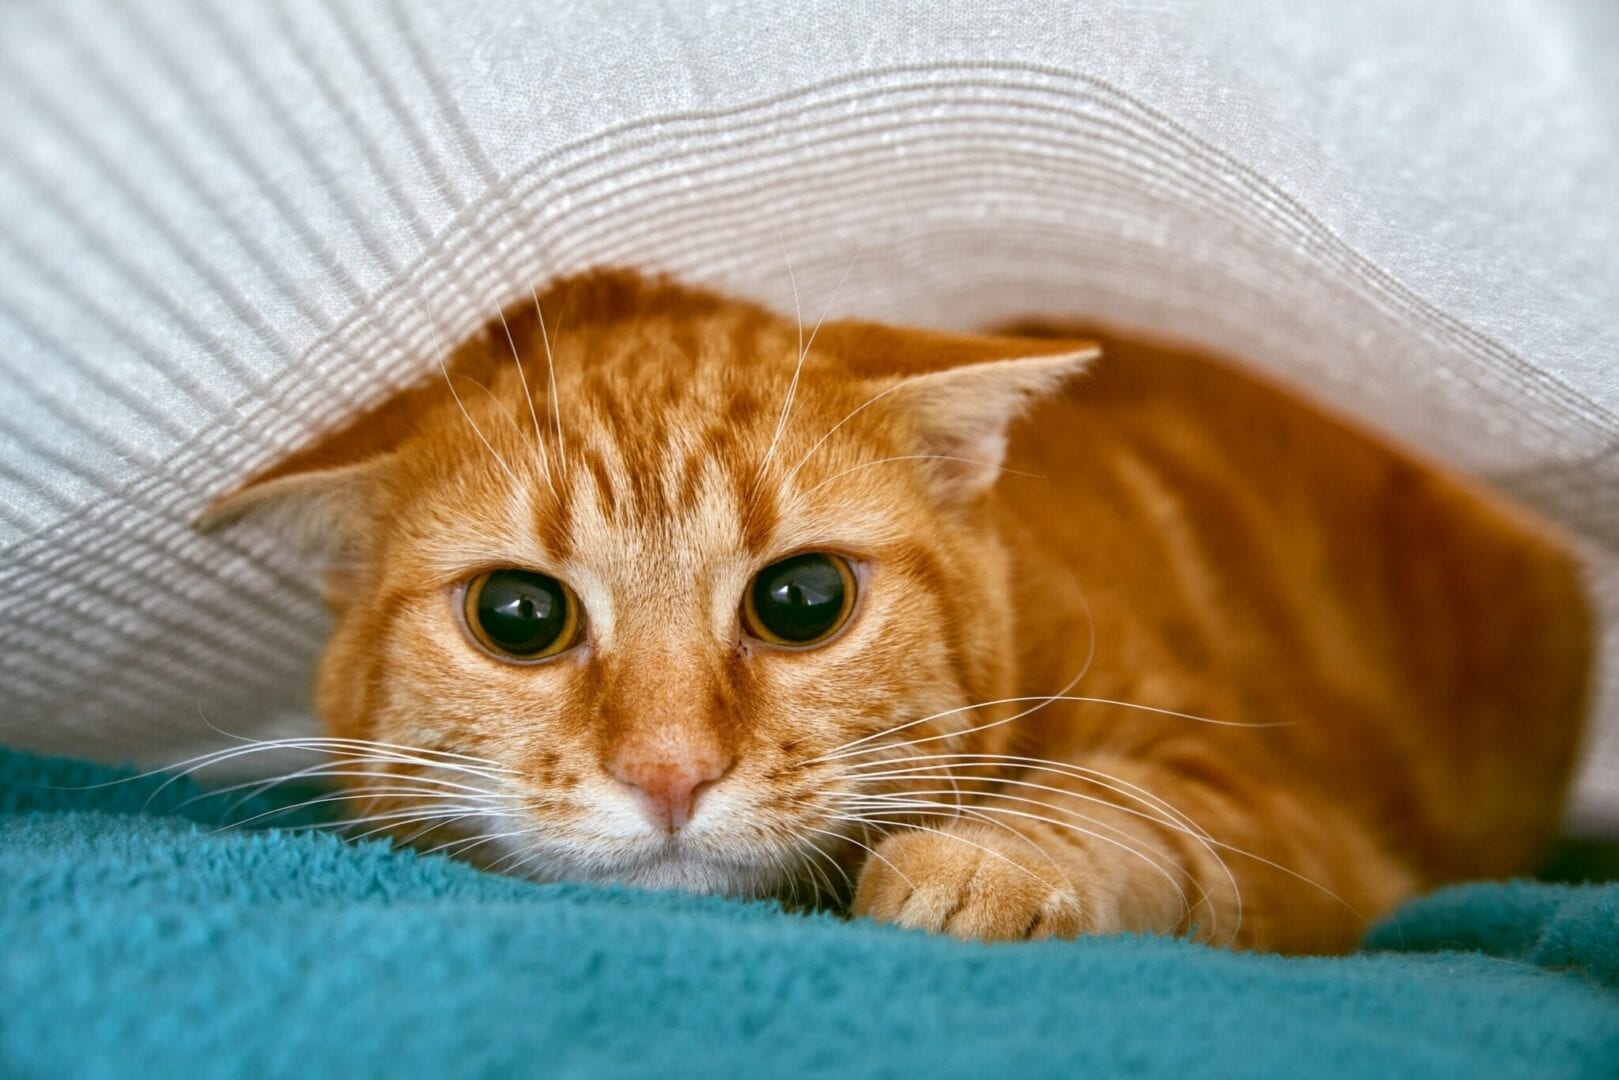 fear aggression in cats